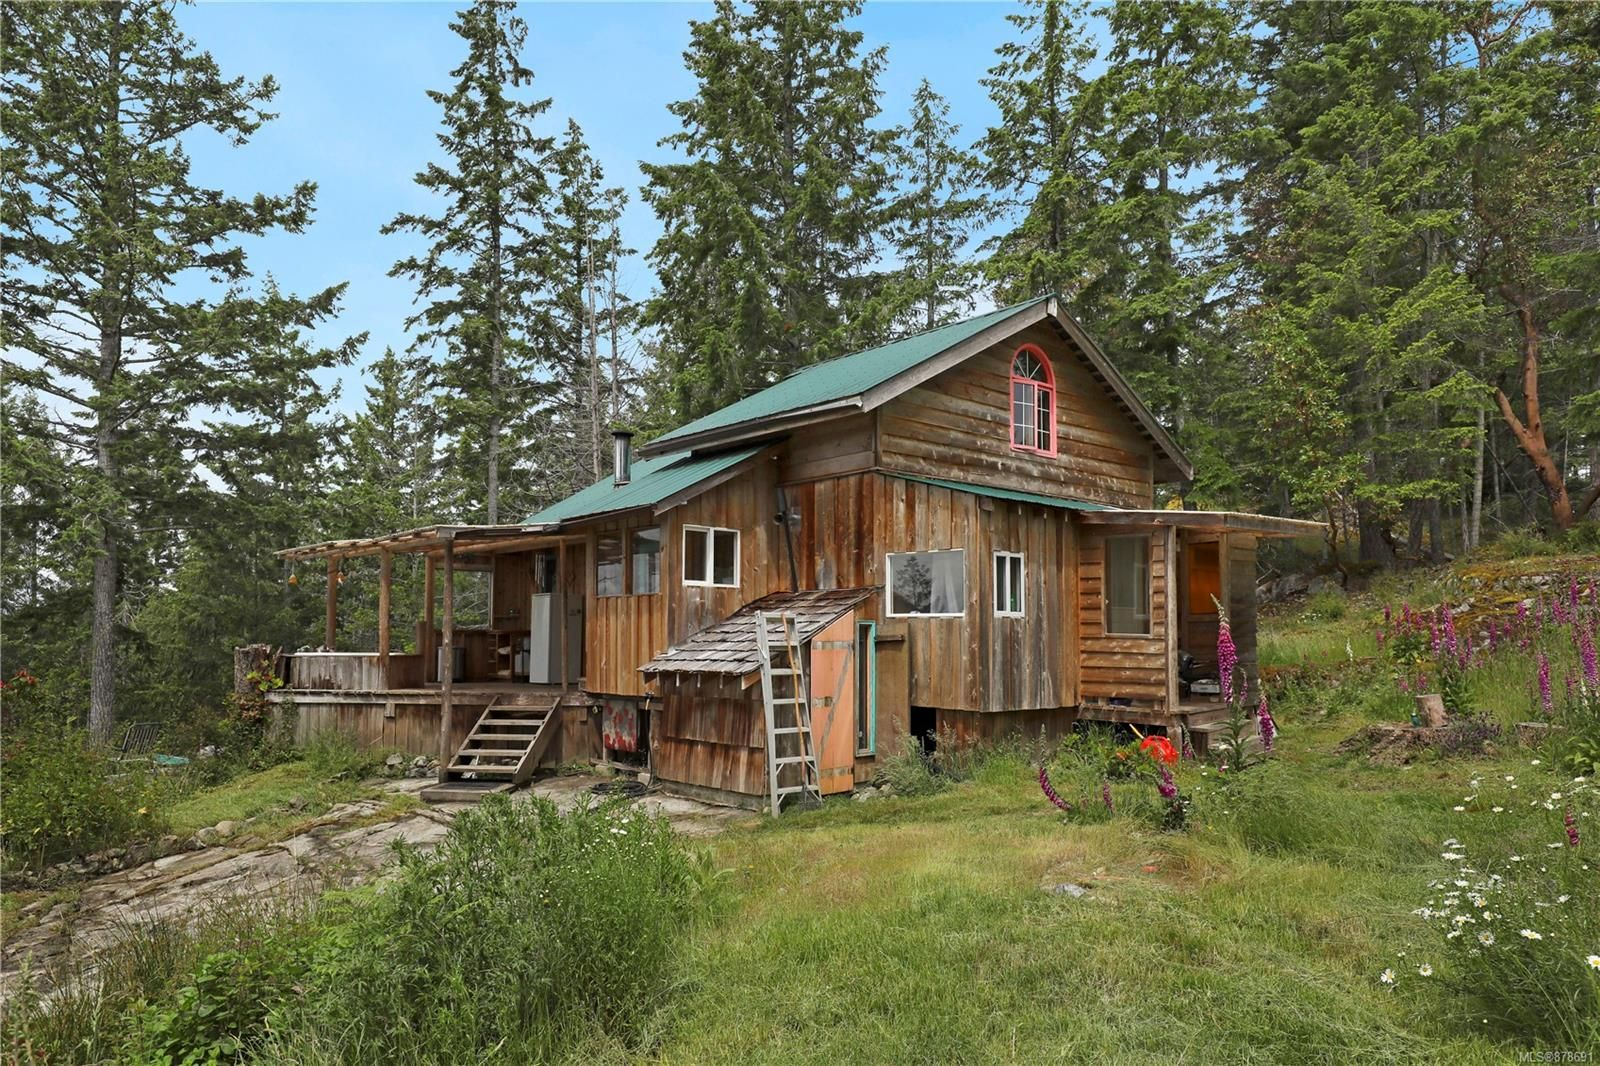 Photo 36: Photos: 979 Thunder Rd in : Isl Cortes Island House for sale (Islands)  : MLS®# 878691